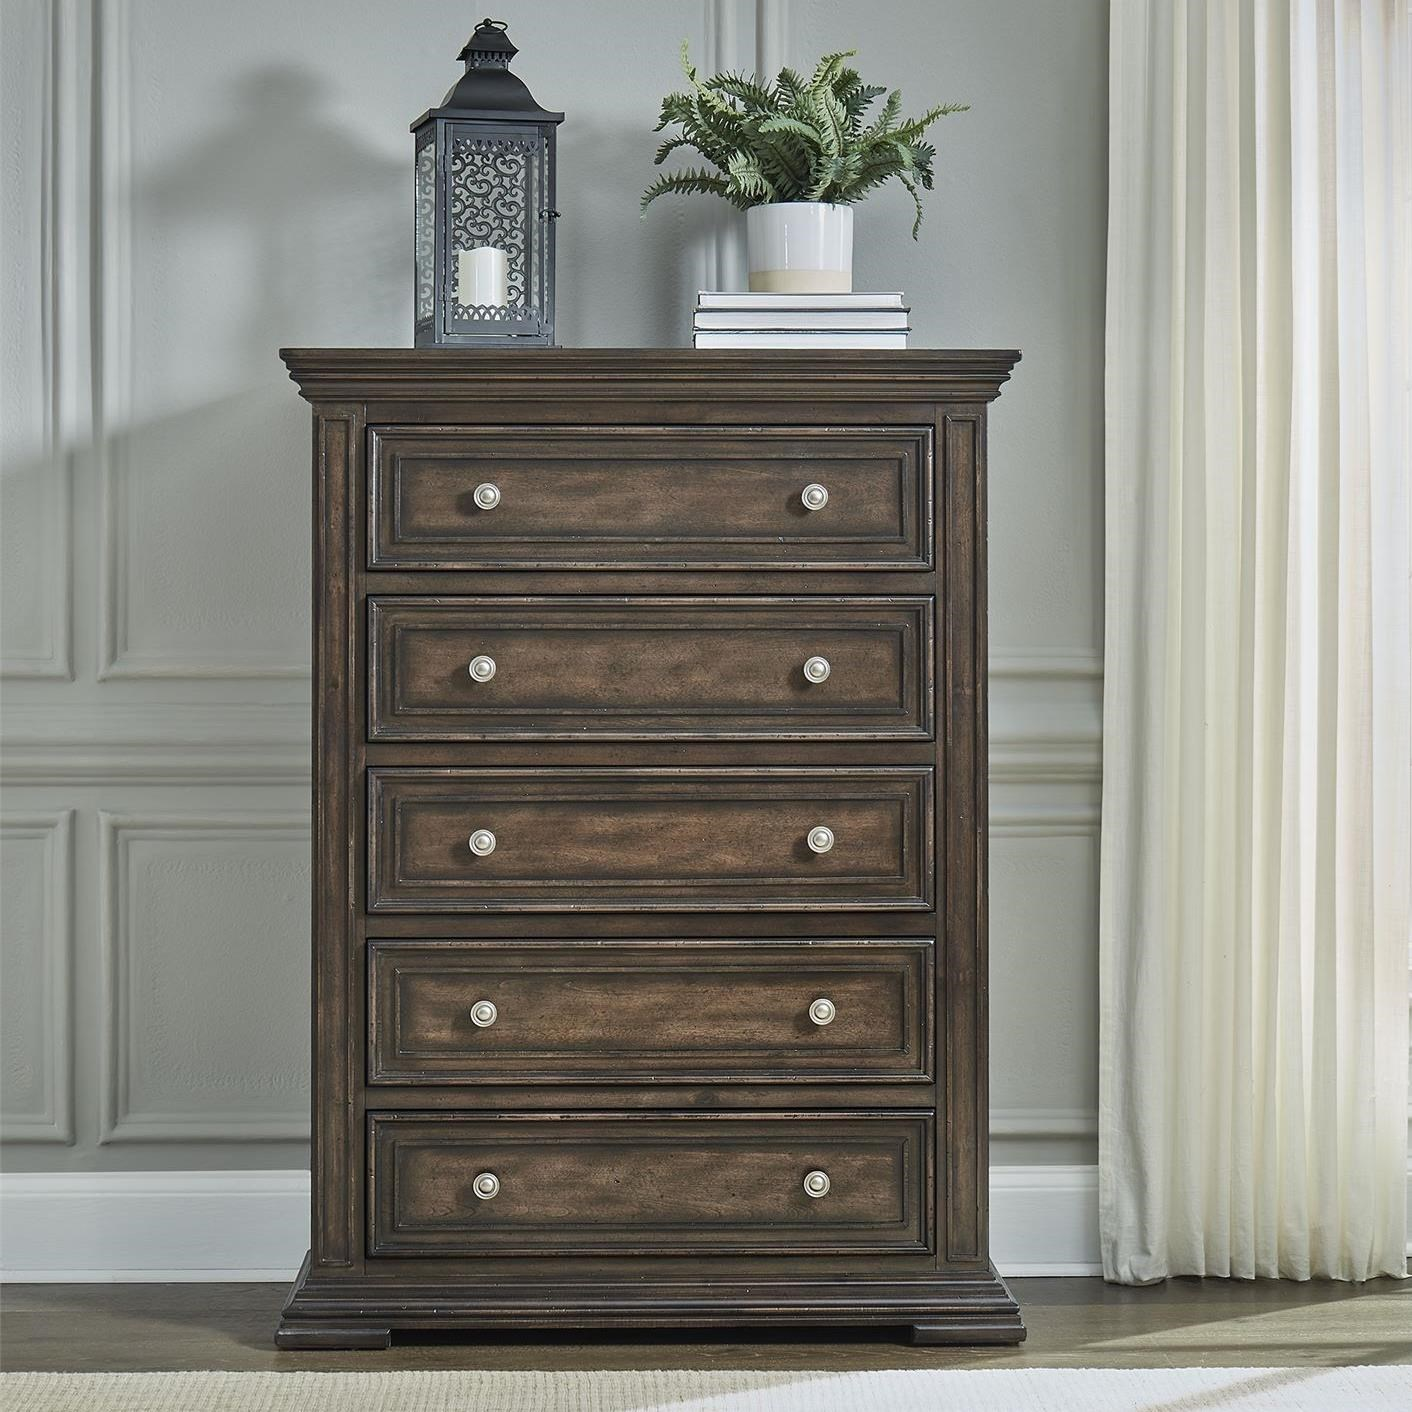 Big Valley 5-Drawer Chest by Libby at Walker's Furniture